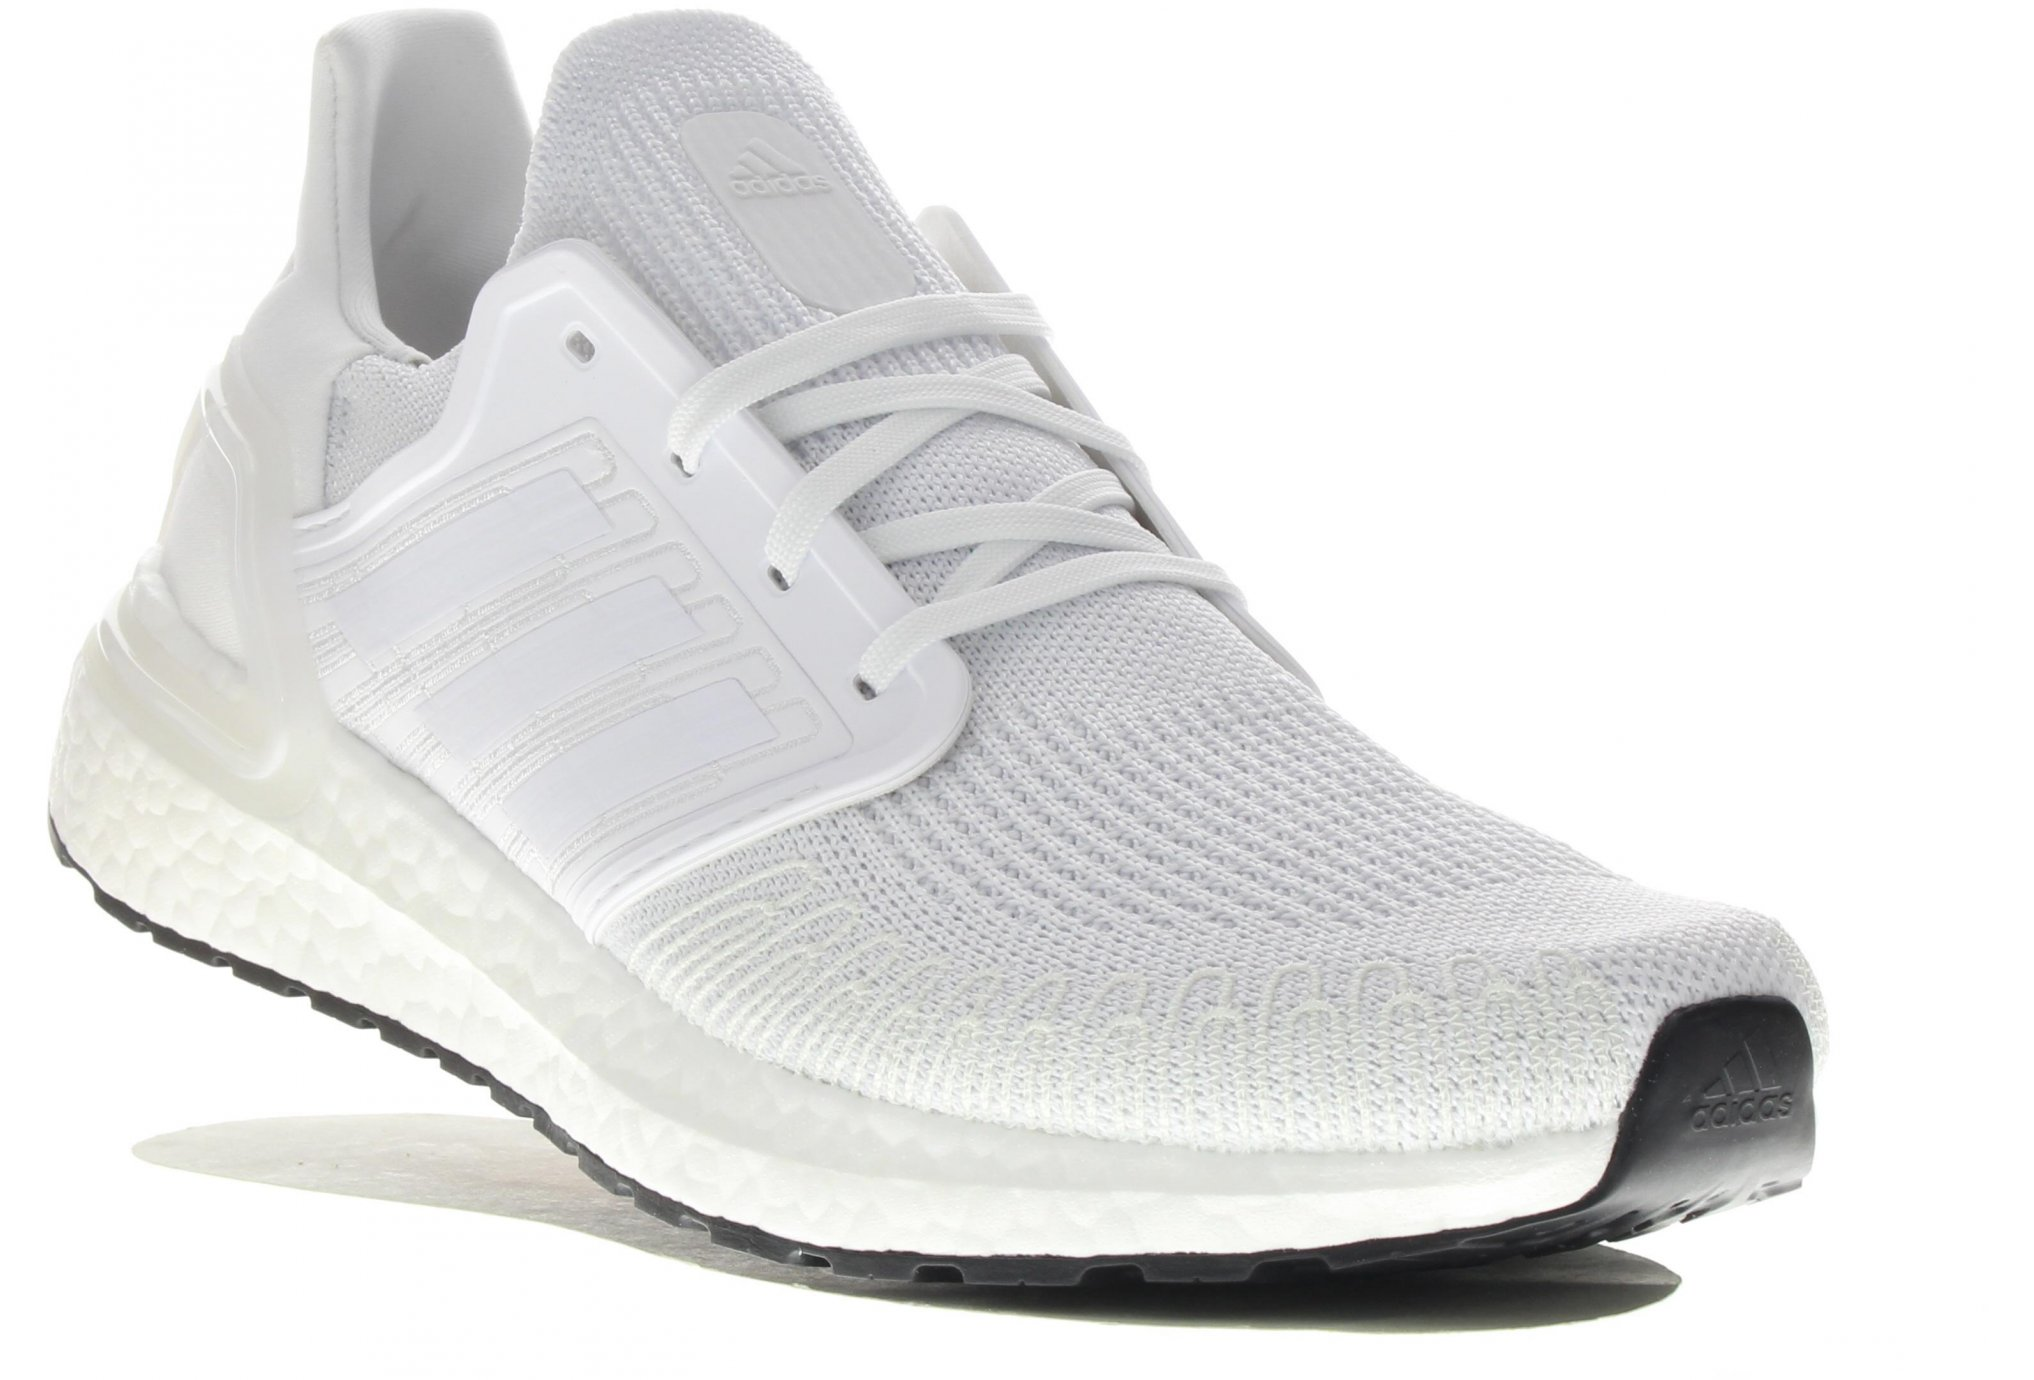 adidas UltraBOOST 20 Chaussures homme